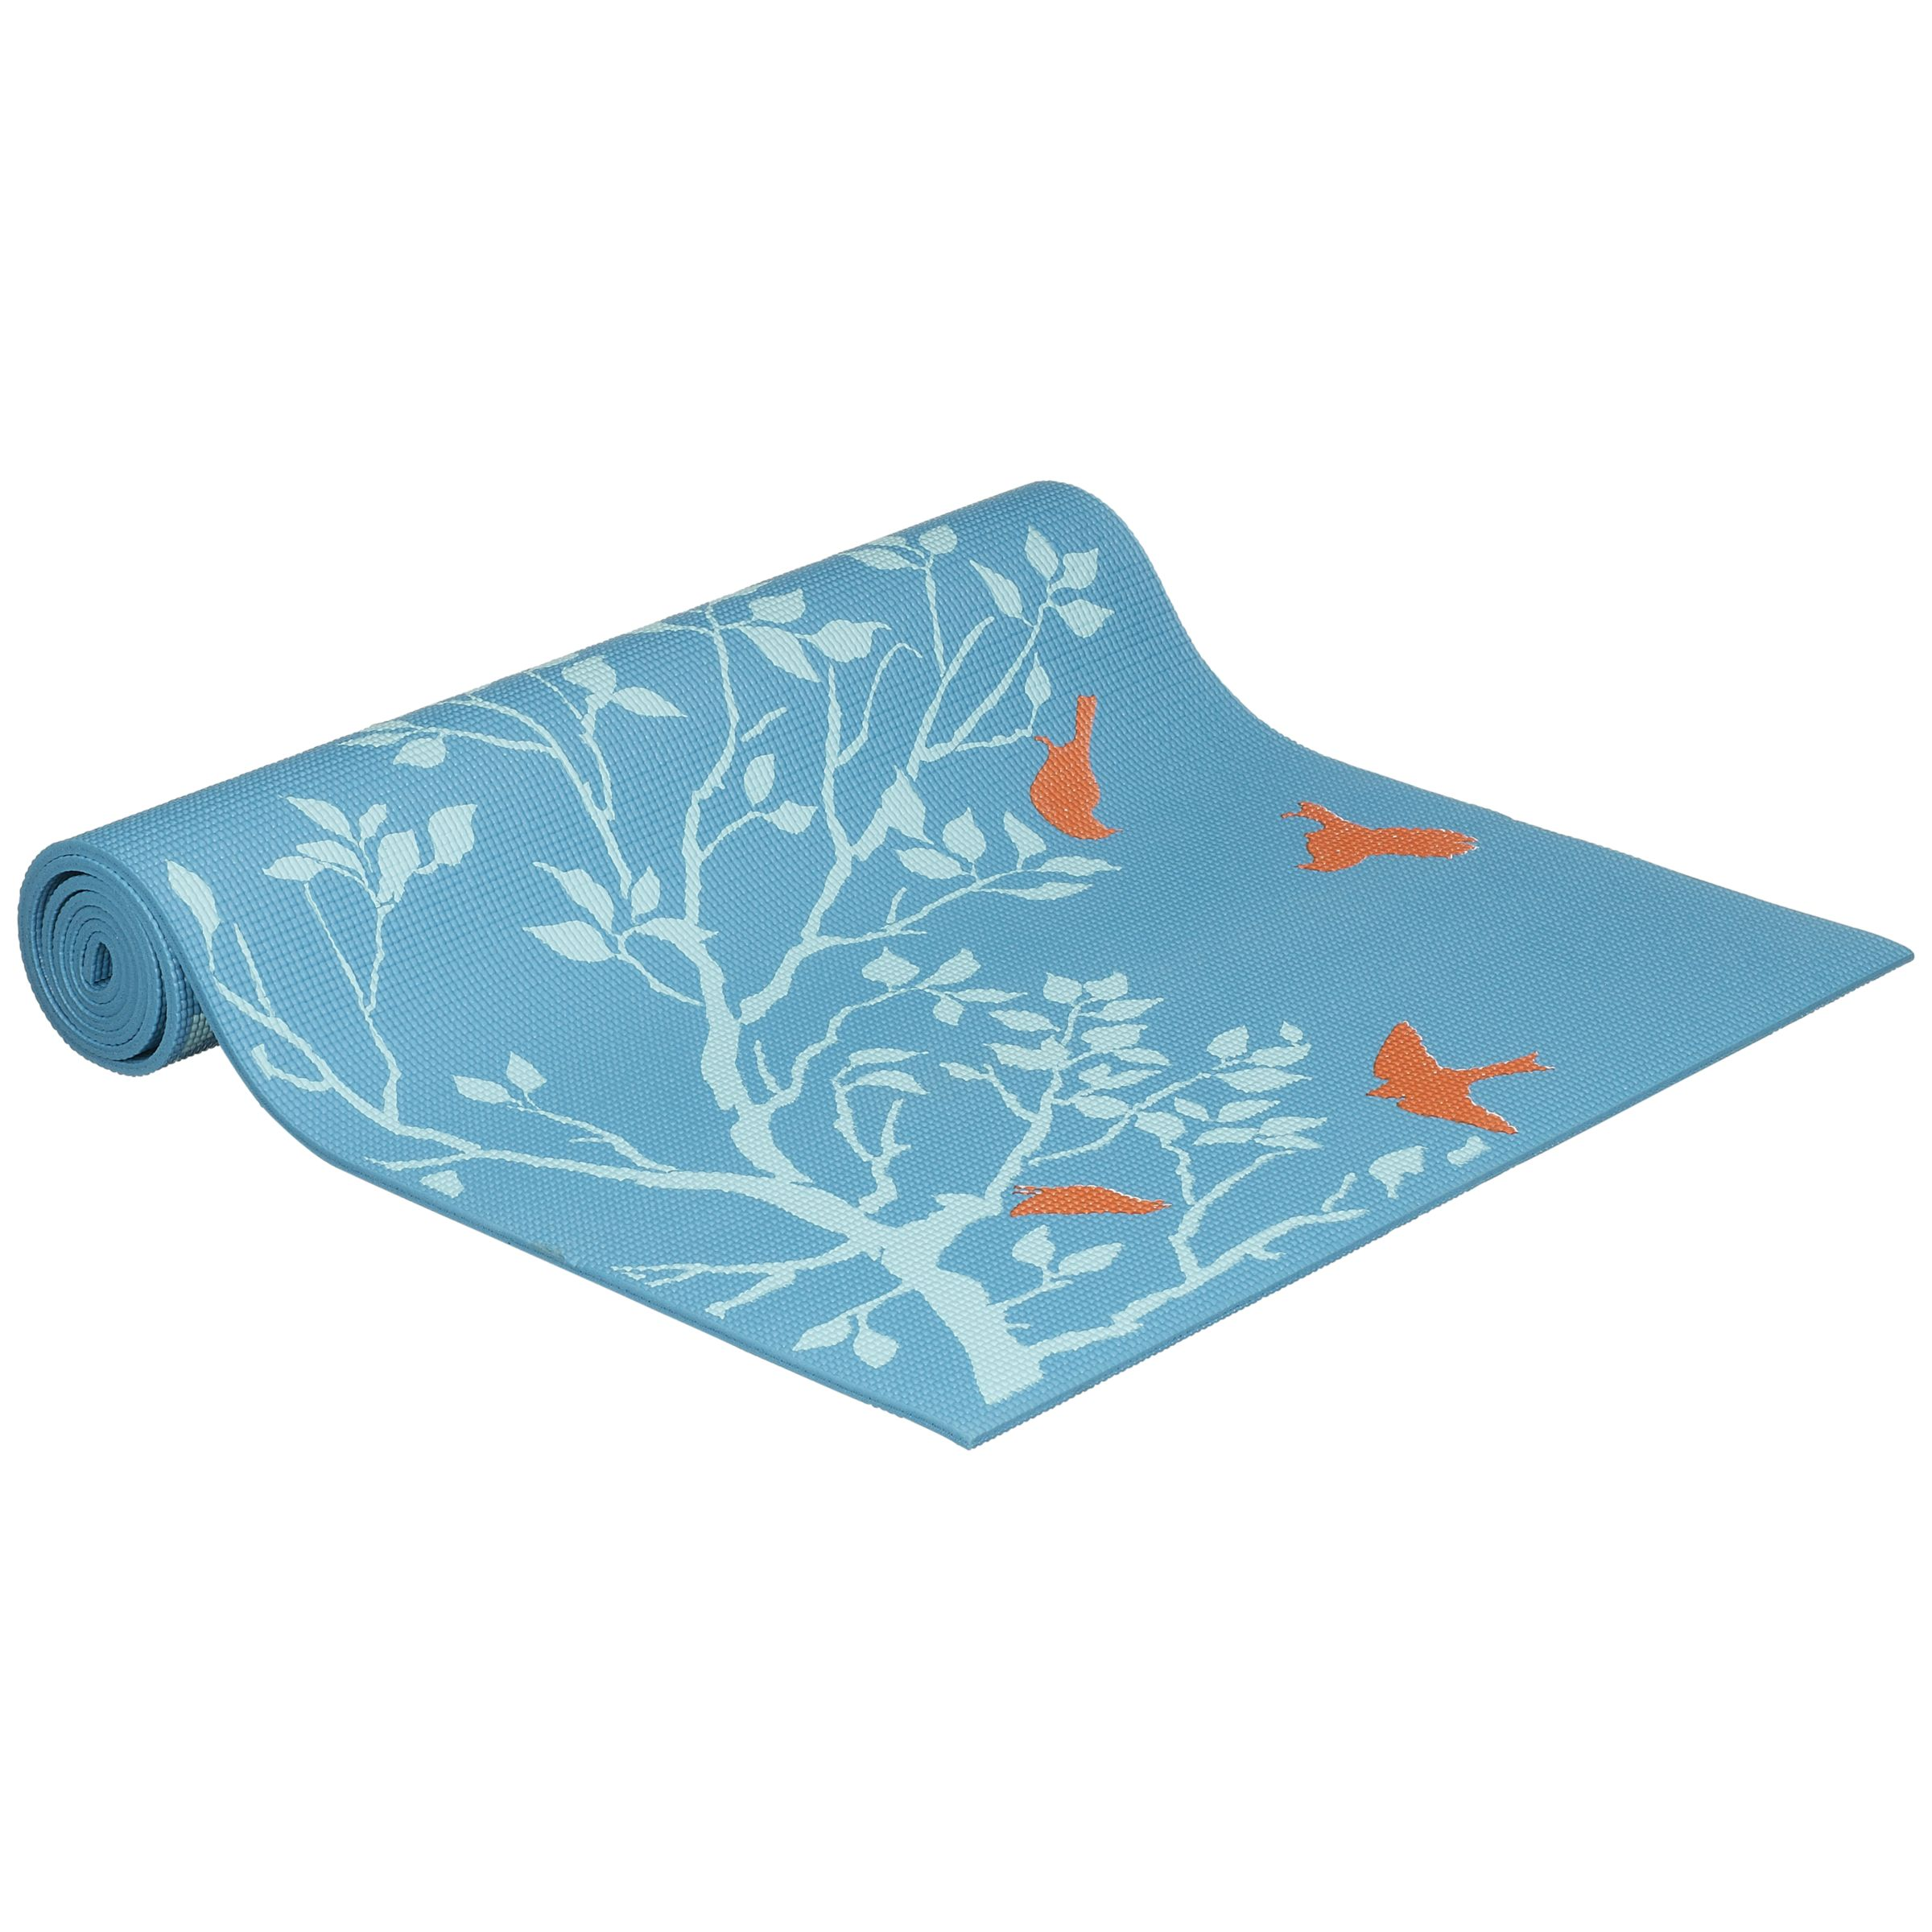 Gaiam Premium Habitat Print Yoga Mat, Blue/Orange